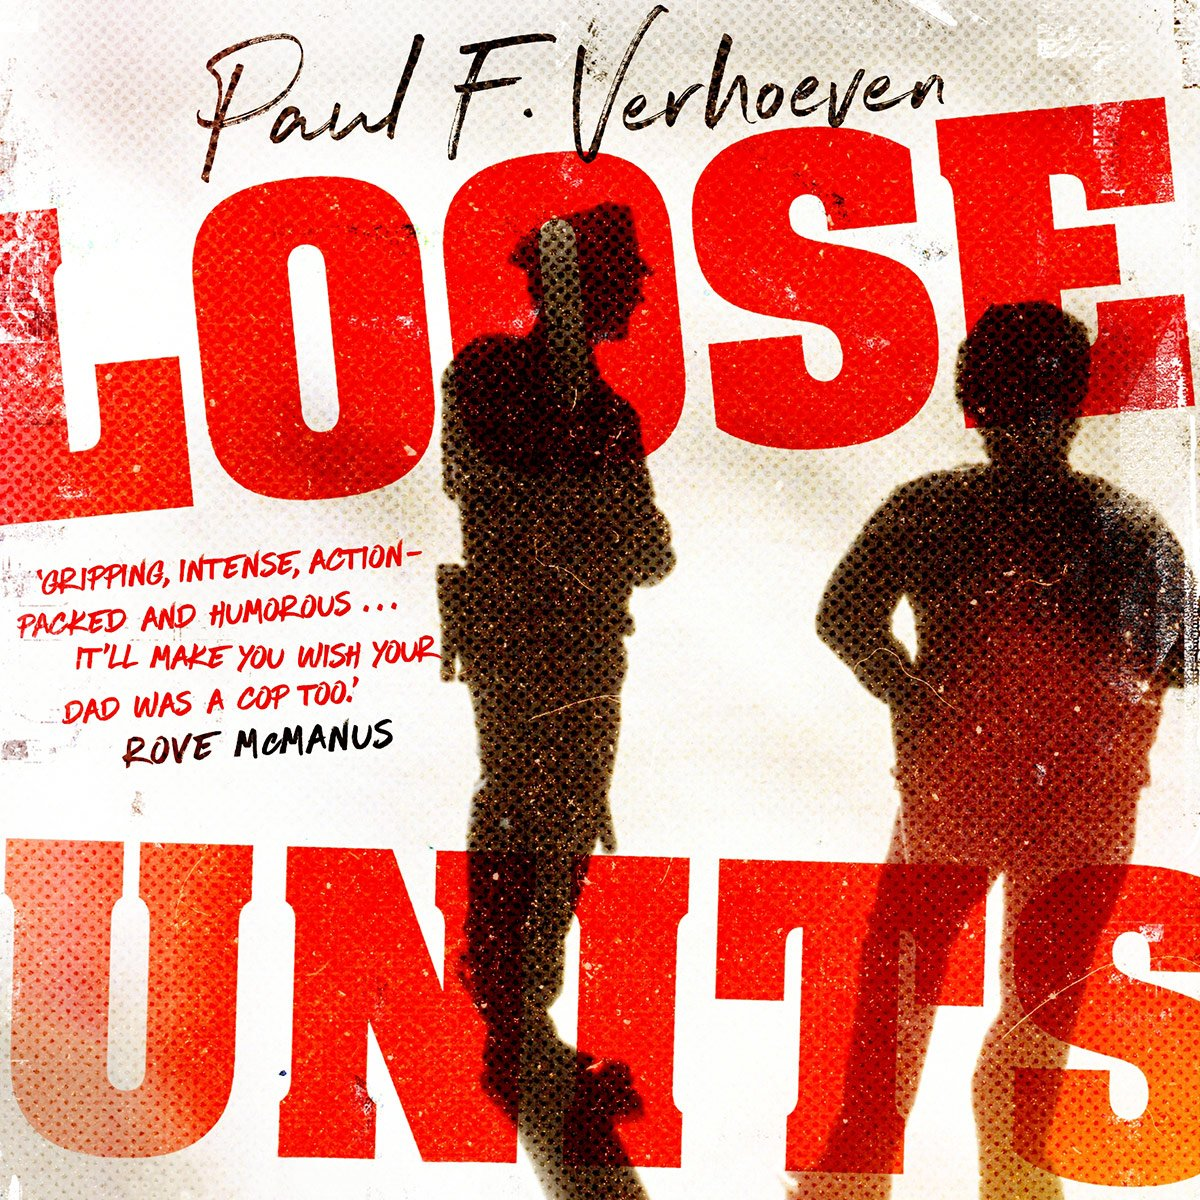 HUGE news, everyone! We've just launched Loose Units: The Podcast! Every week, my ex-cop dad and I will delve through true crime cases too strange, short or messy to have fit in Loose Units, the book. Episode one is up right now! https://t.co/C6ZeV6pHZg